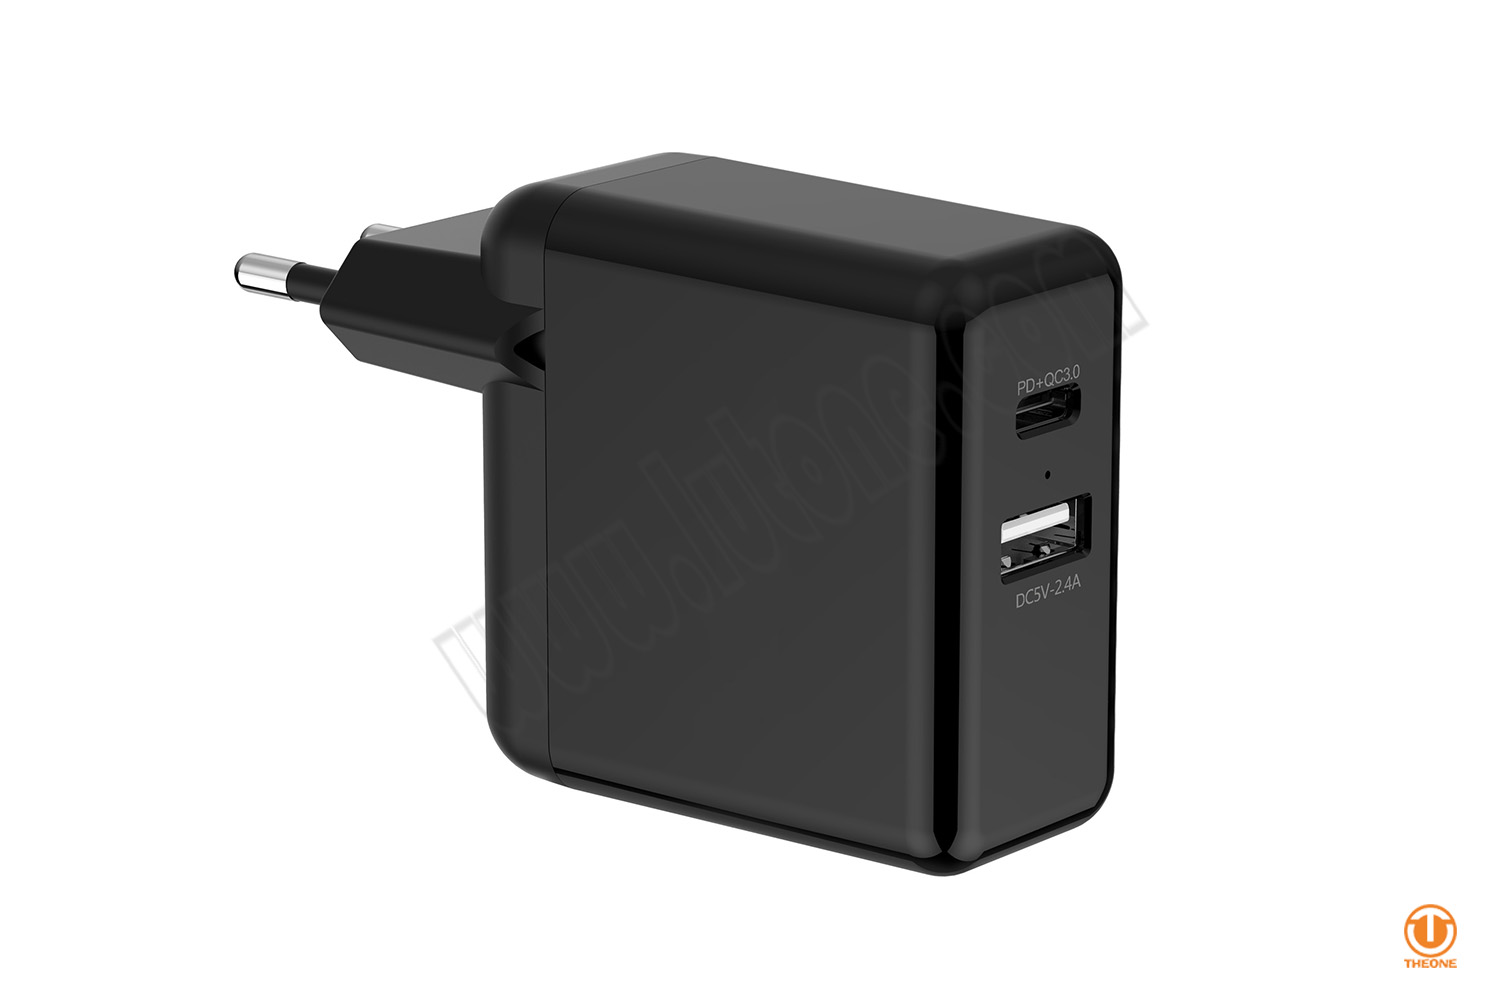 30W USB-C PD Charger (with extra USB port)